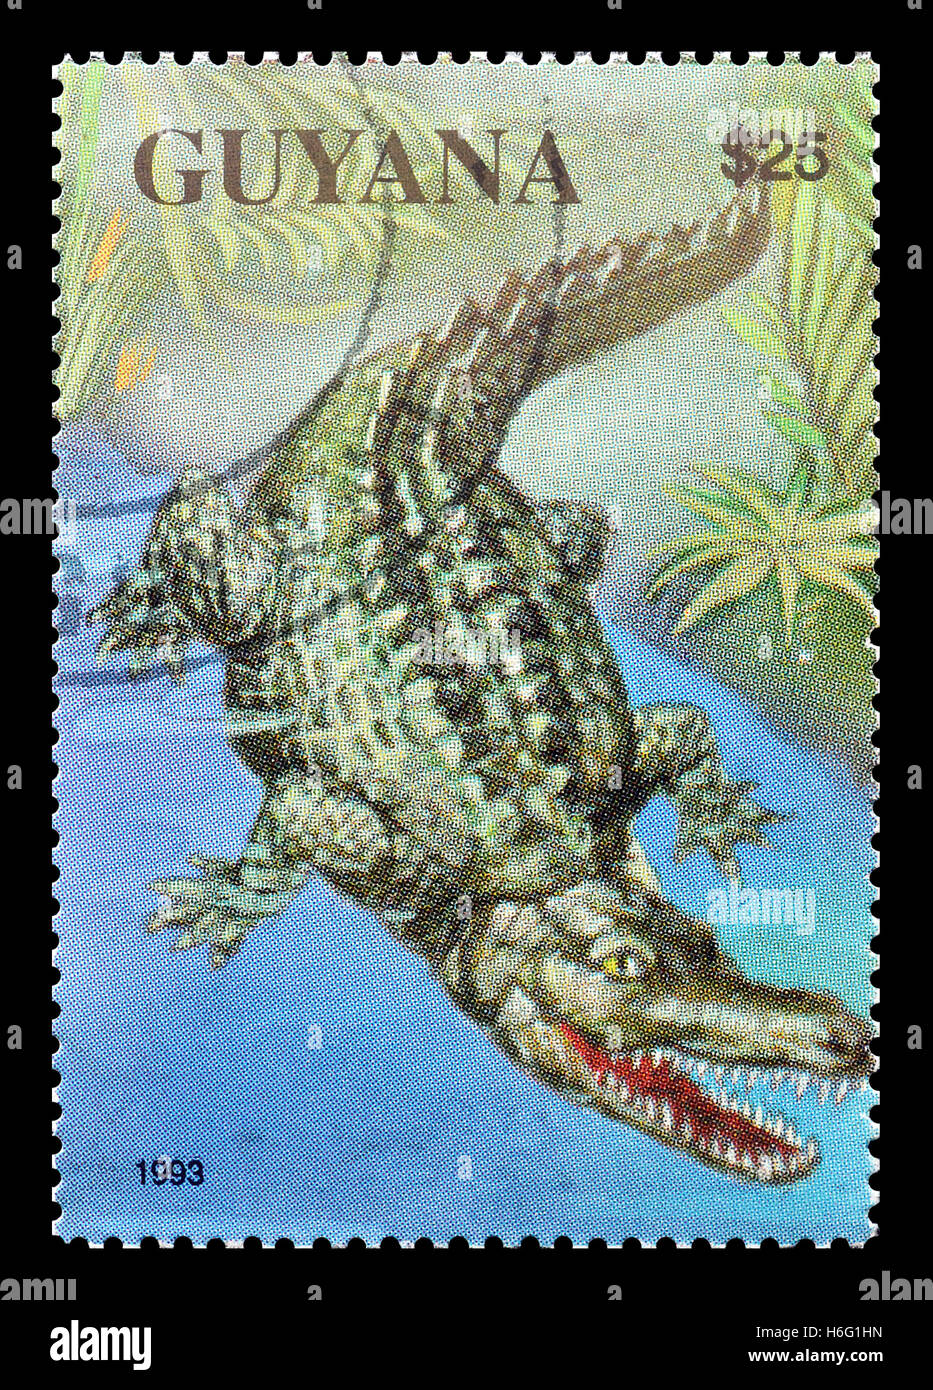 Guyana stamp 1993 - Stock Image